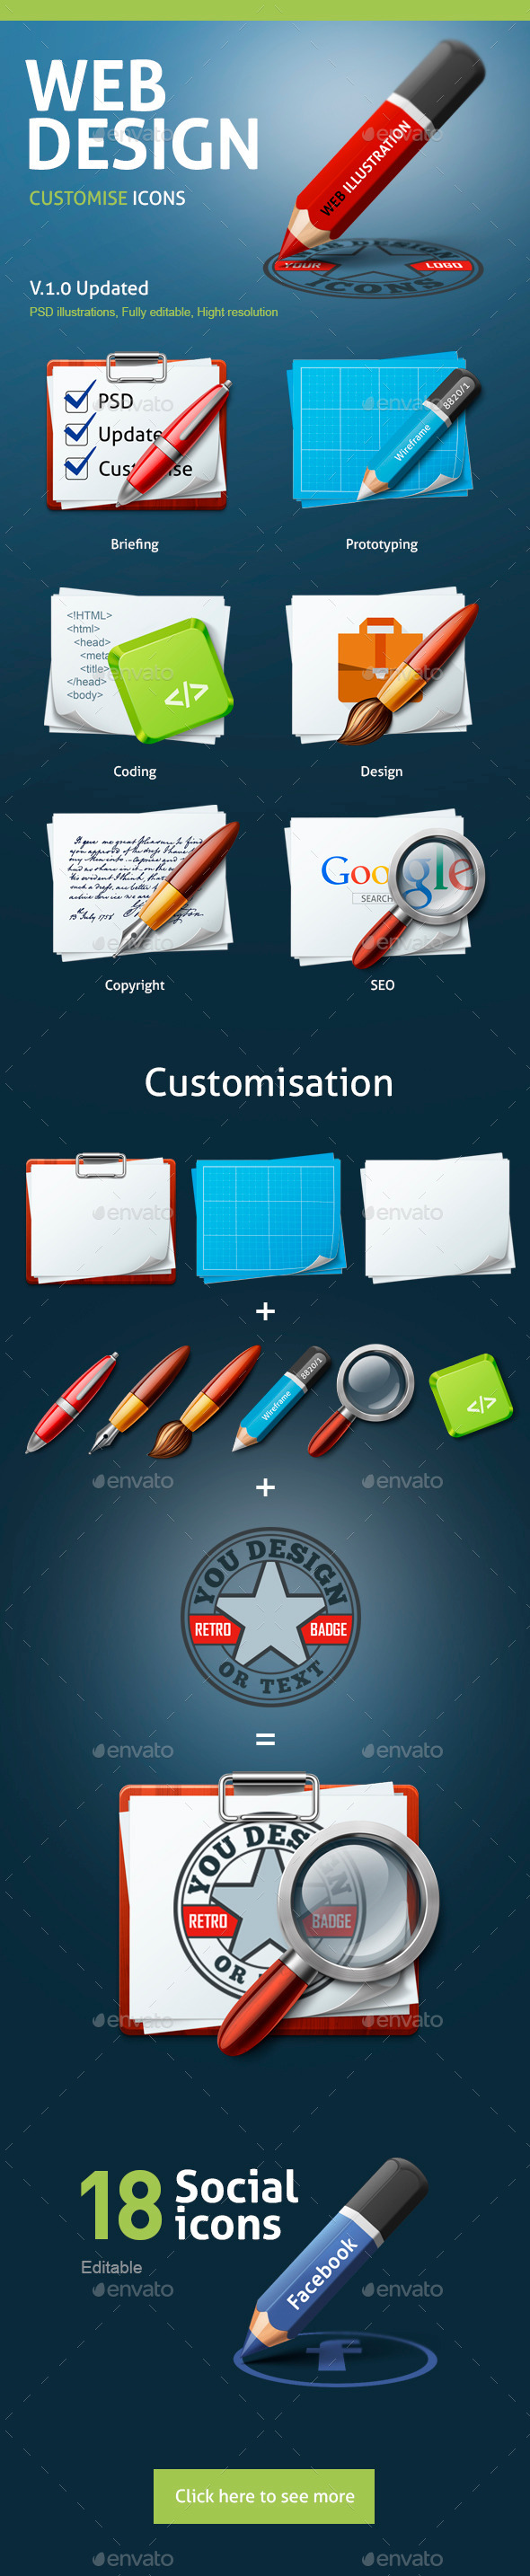 GraphicRiver WEB Design customise icons 10411017